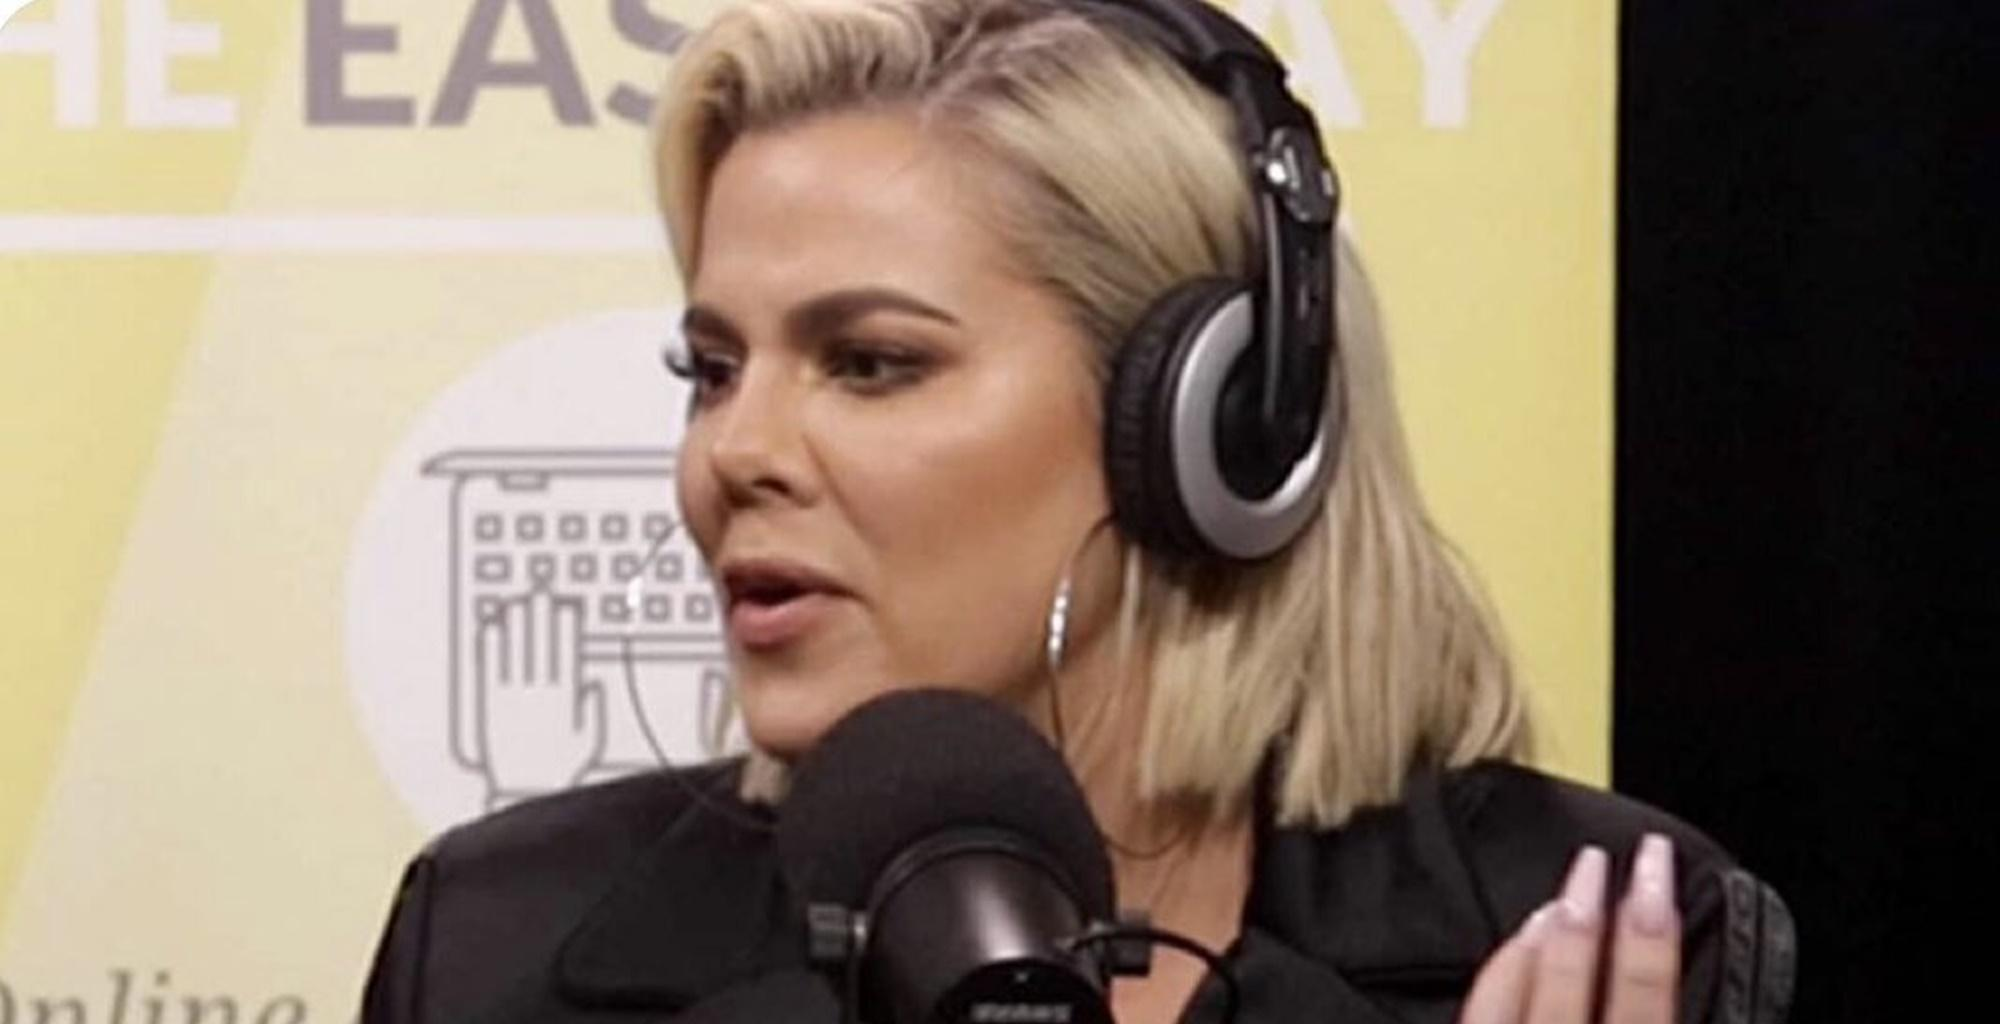 Khloe Kardashian's Nose Job Rumor Started After This Picture -- Was Tristan Thompson's Ex-Girlfriend Lying About That 'Authentic Self' Angle?